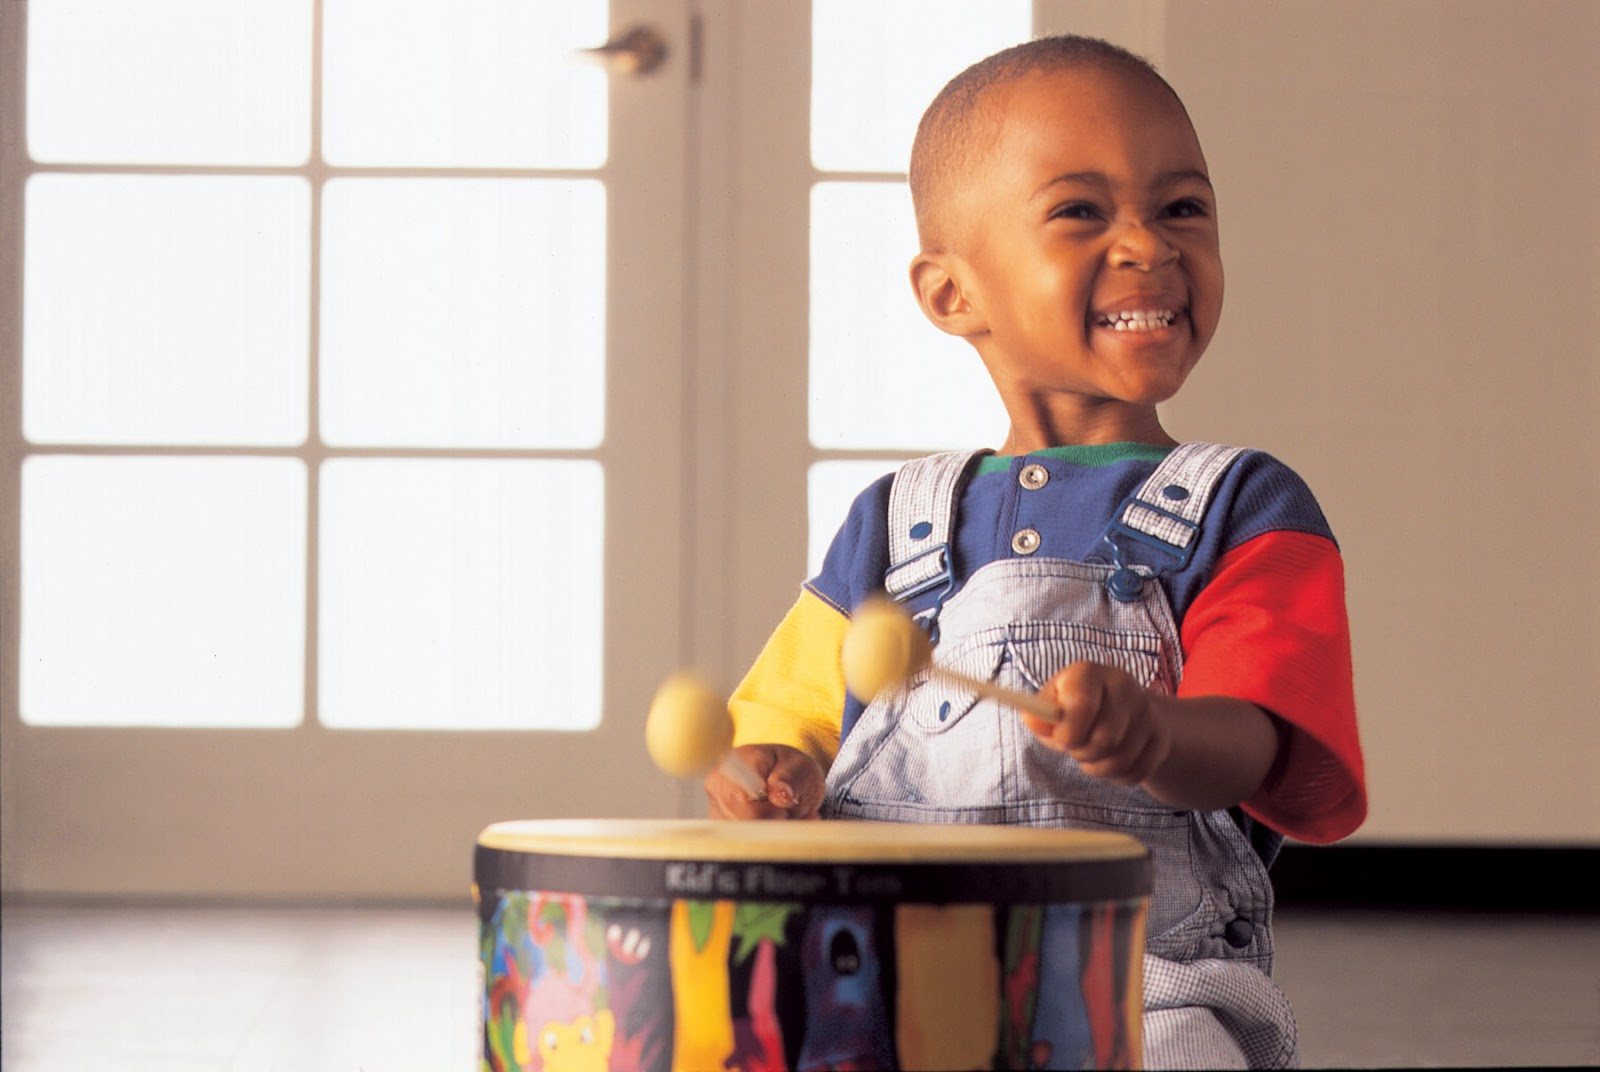 A little boy in overalls plays a drum excitedly.